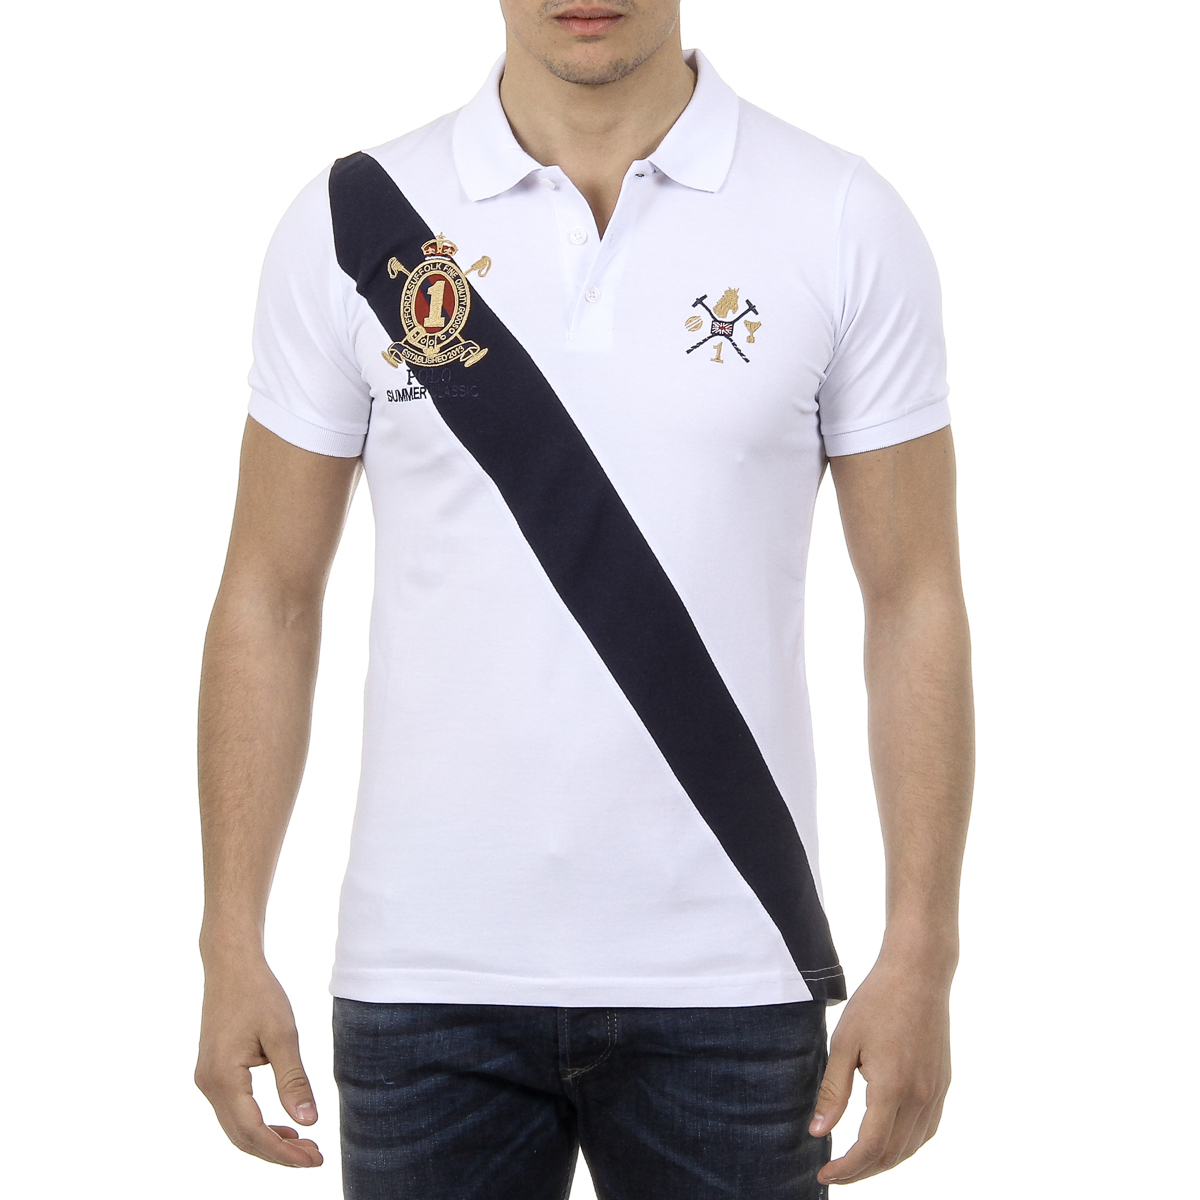 Primary image for Ufford & Suffolk Polo Club Mens Polo Short Sleeves US004 WHITE